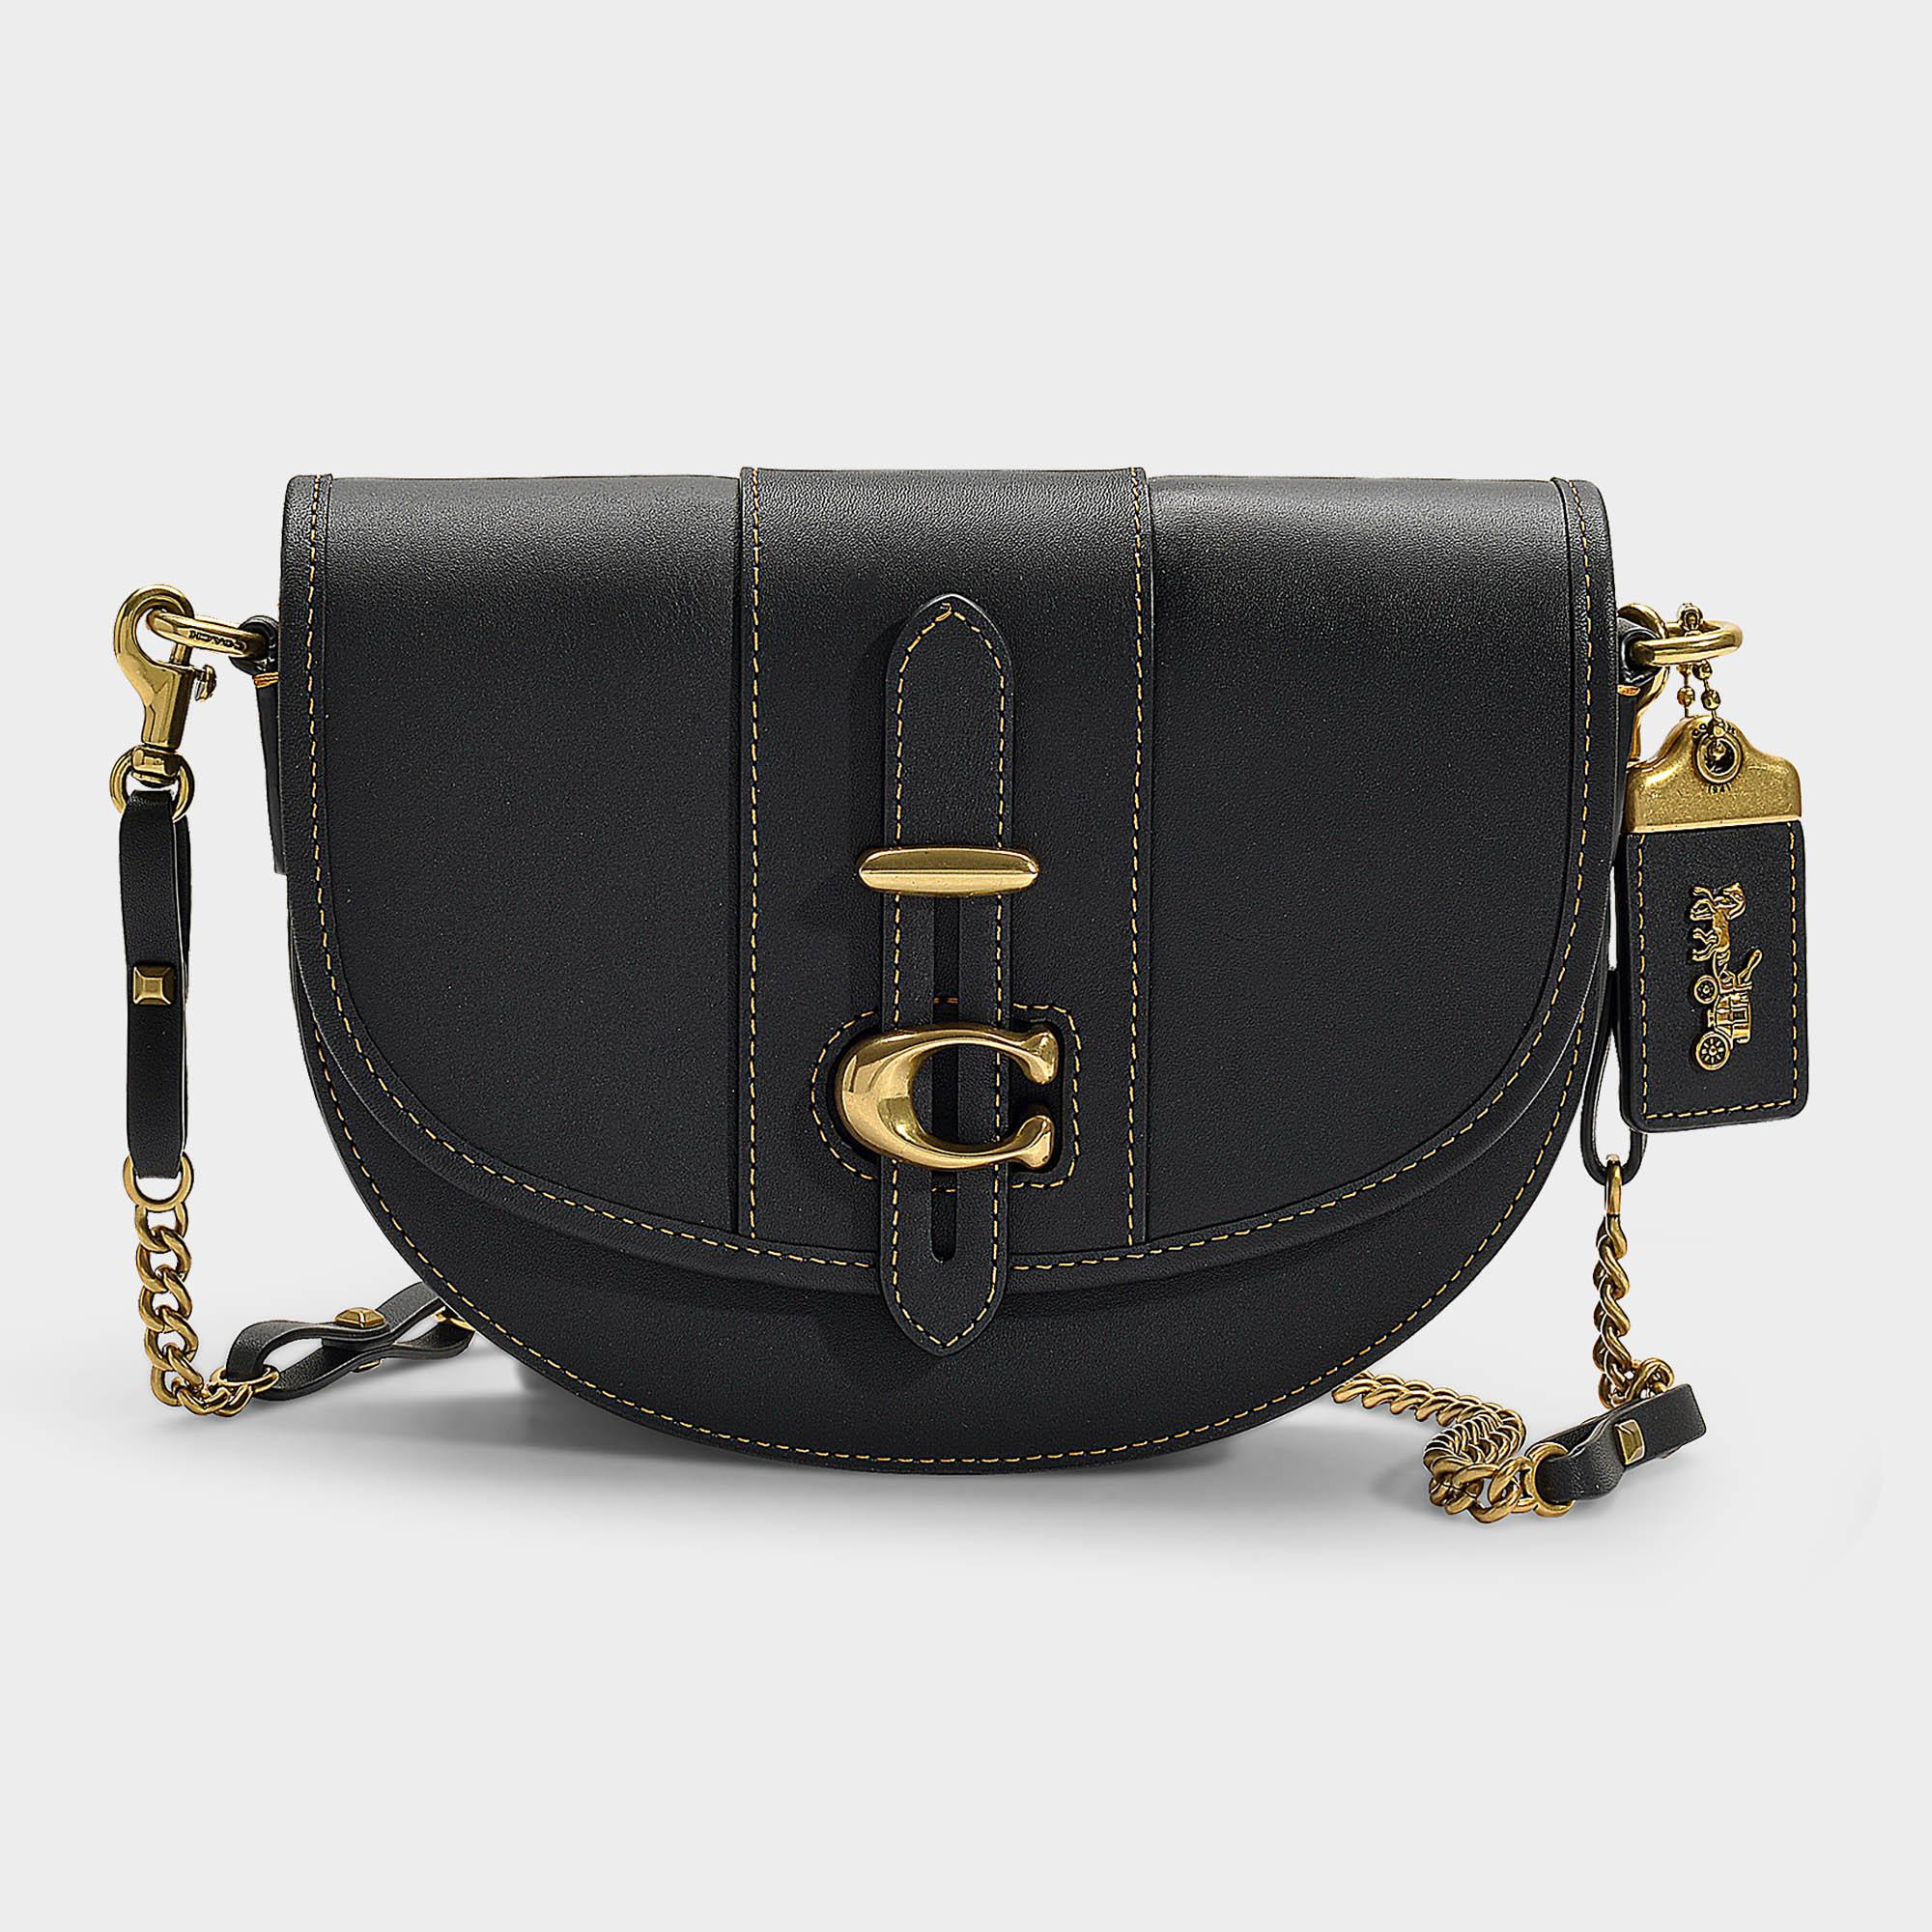 598769c9d4fd Lyst - COACH Saddle Bag 20 In Black Glovetanned Leather in Black